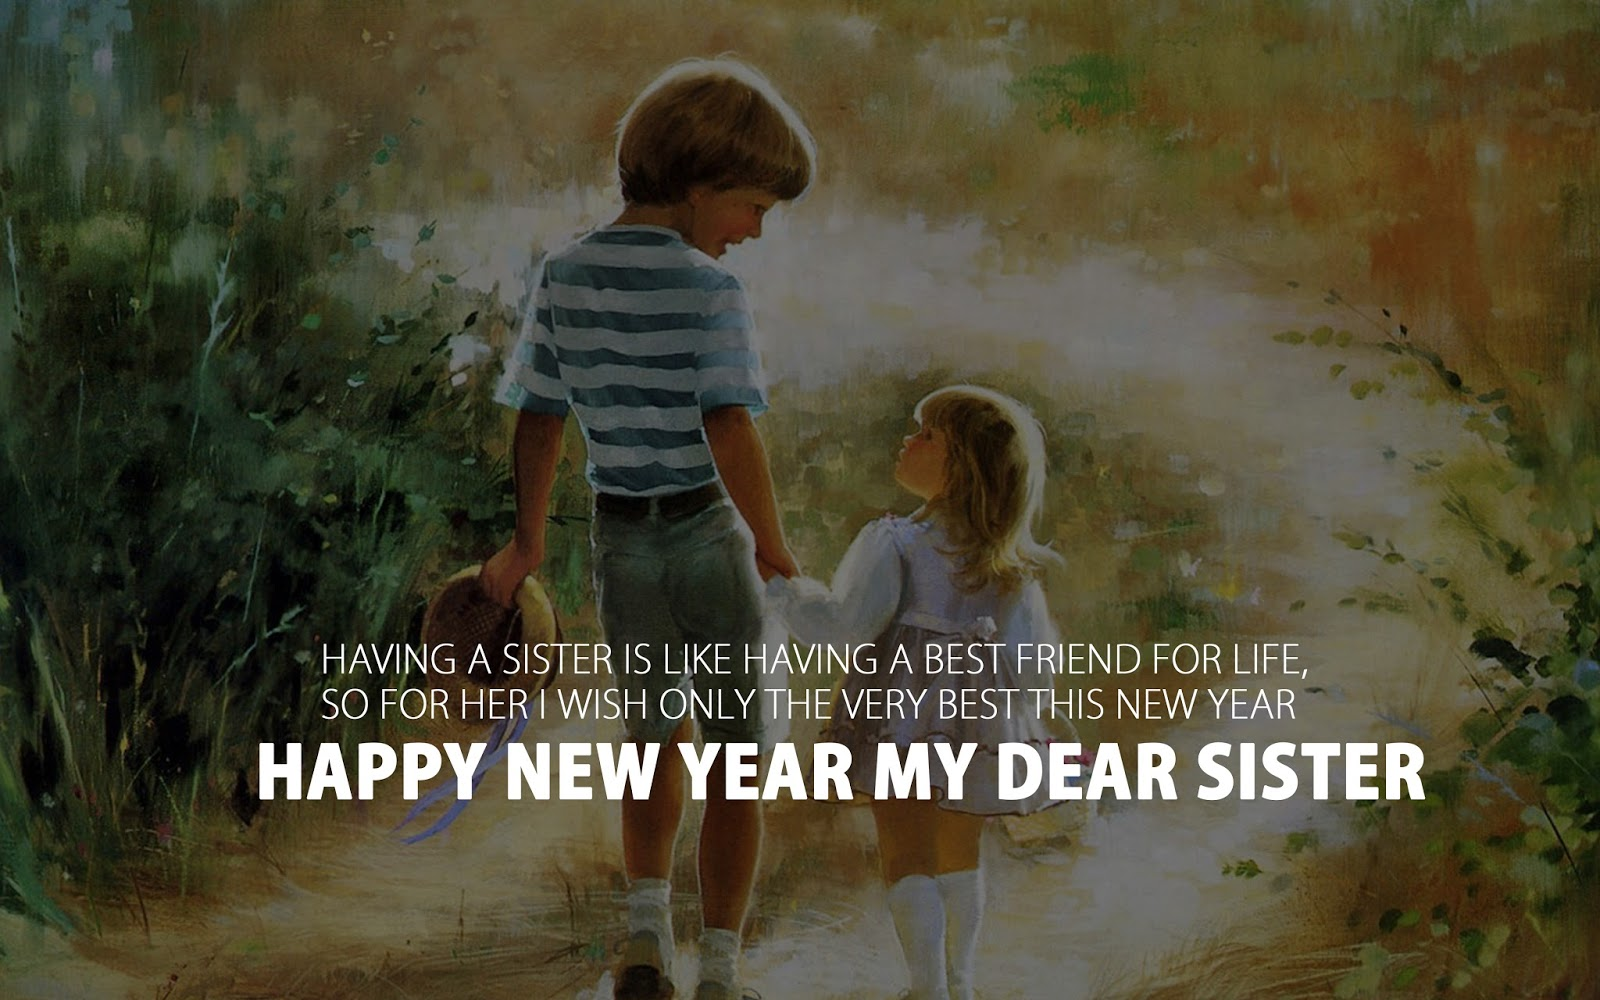 Happy New Year 2018 Images Wishes For Sister